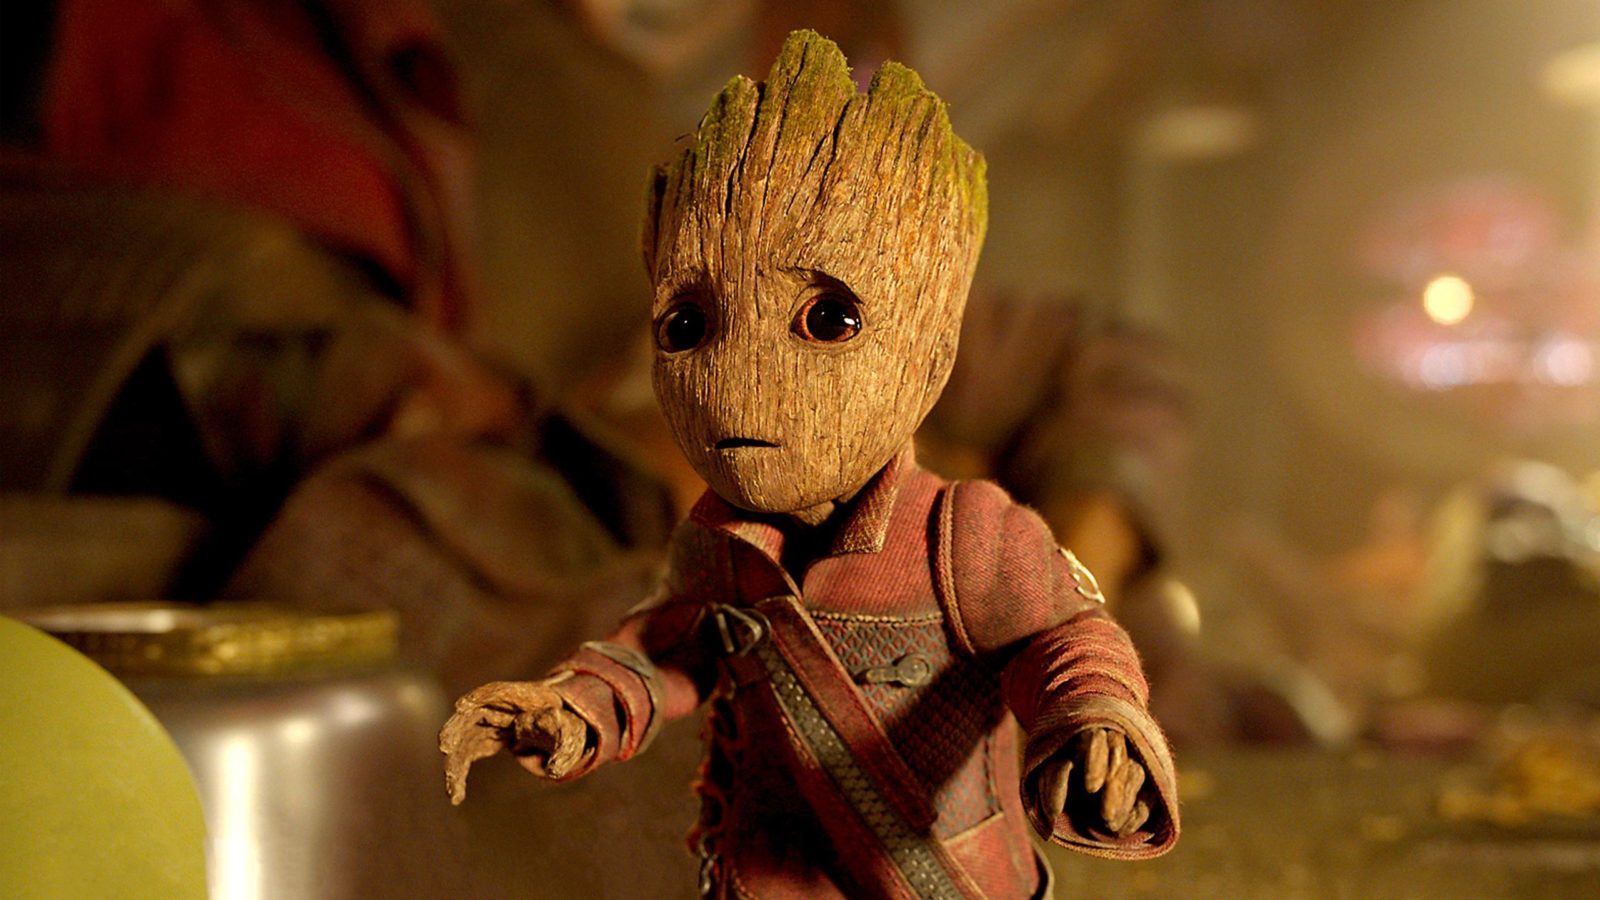 Avengers Wallpaper Iphone X Baby Groot Guardians Of The Galaxy Wallpapers Hd Wallpapers